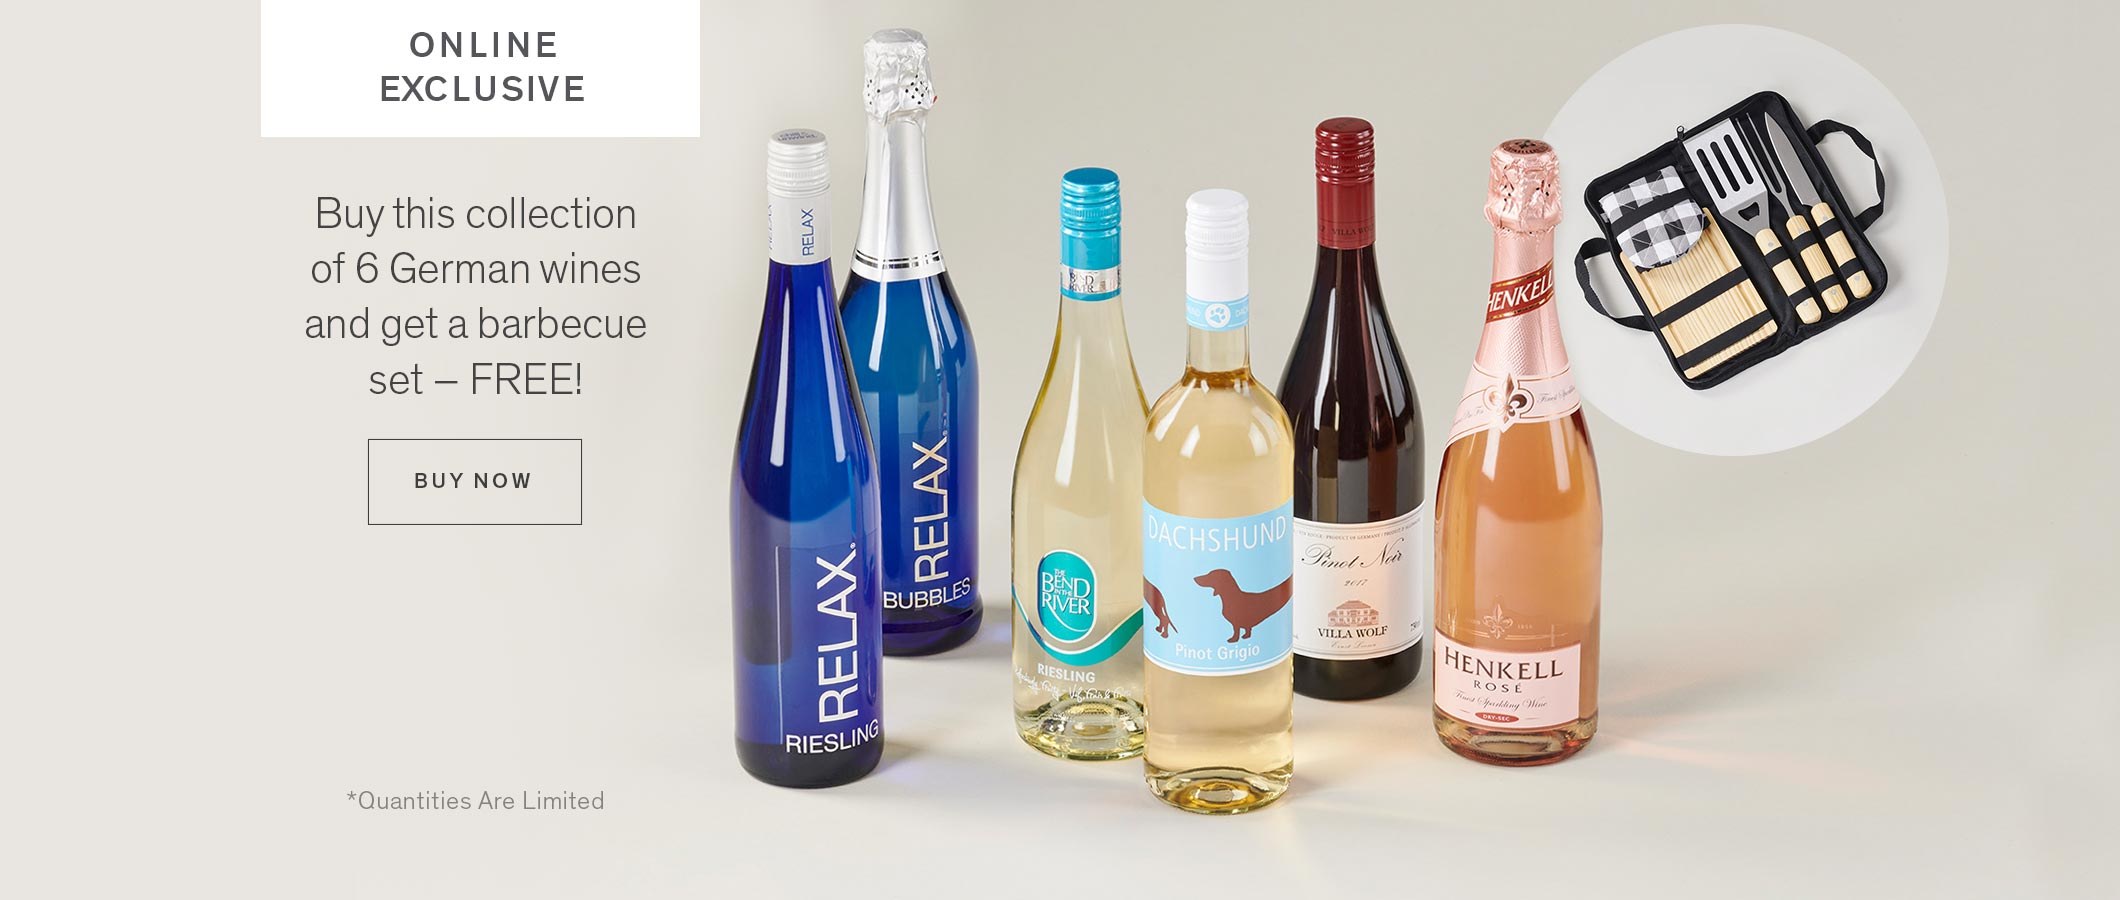 Online Exclusive  Buy this collection of 6 German wines and get a barbecue set – FREE!  BUY NOW